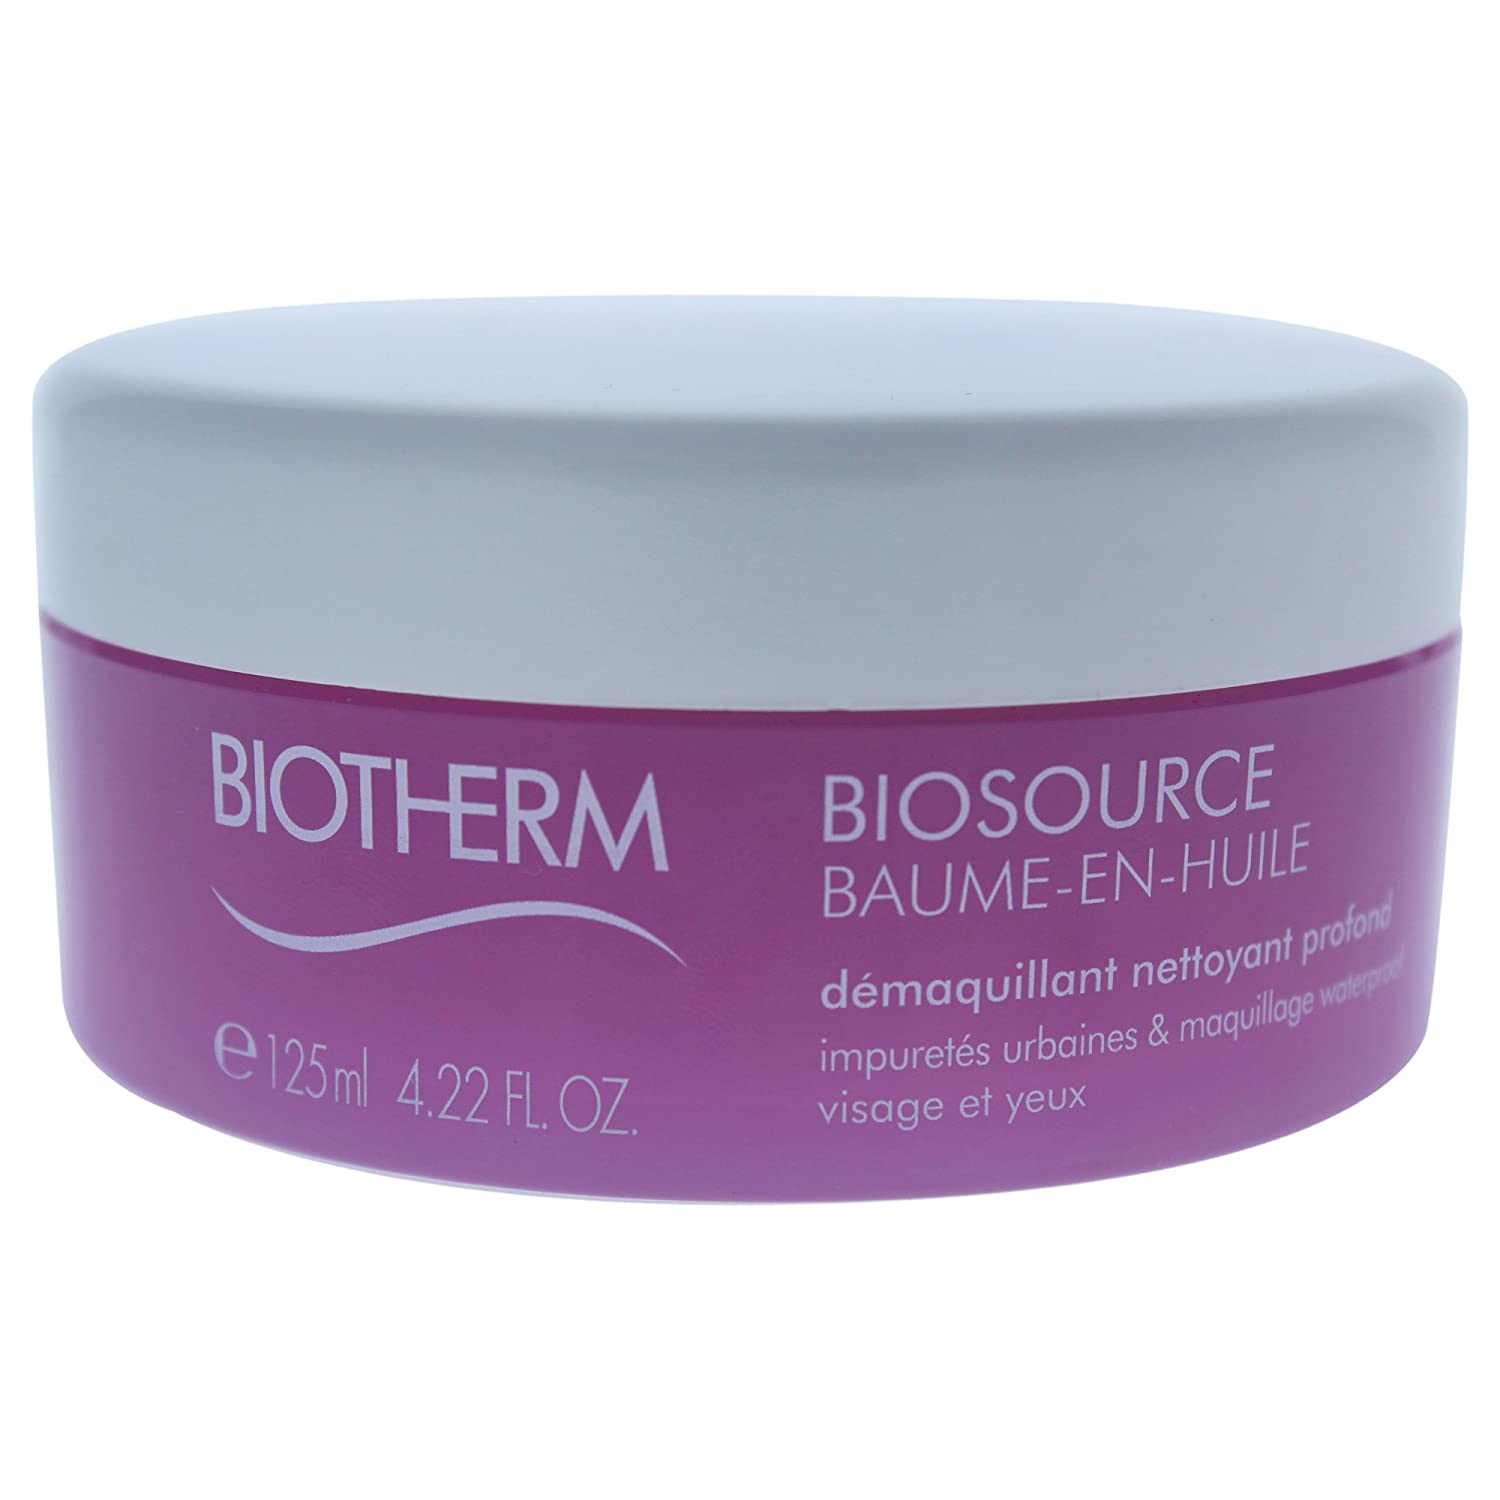 Biotherm Biosource Balm-To-Oil Deep Cleanser & Make-up Remover 125ml/4.22oz 3605540913161